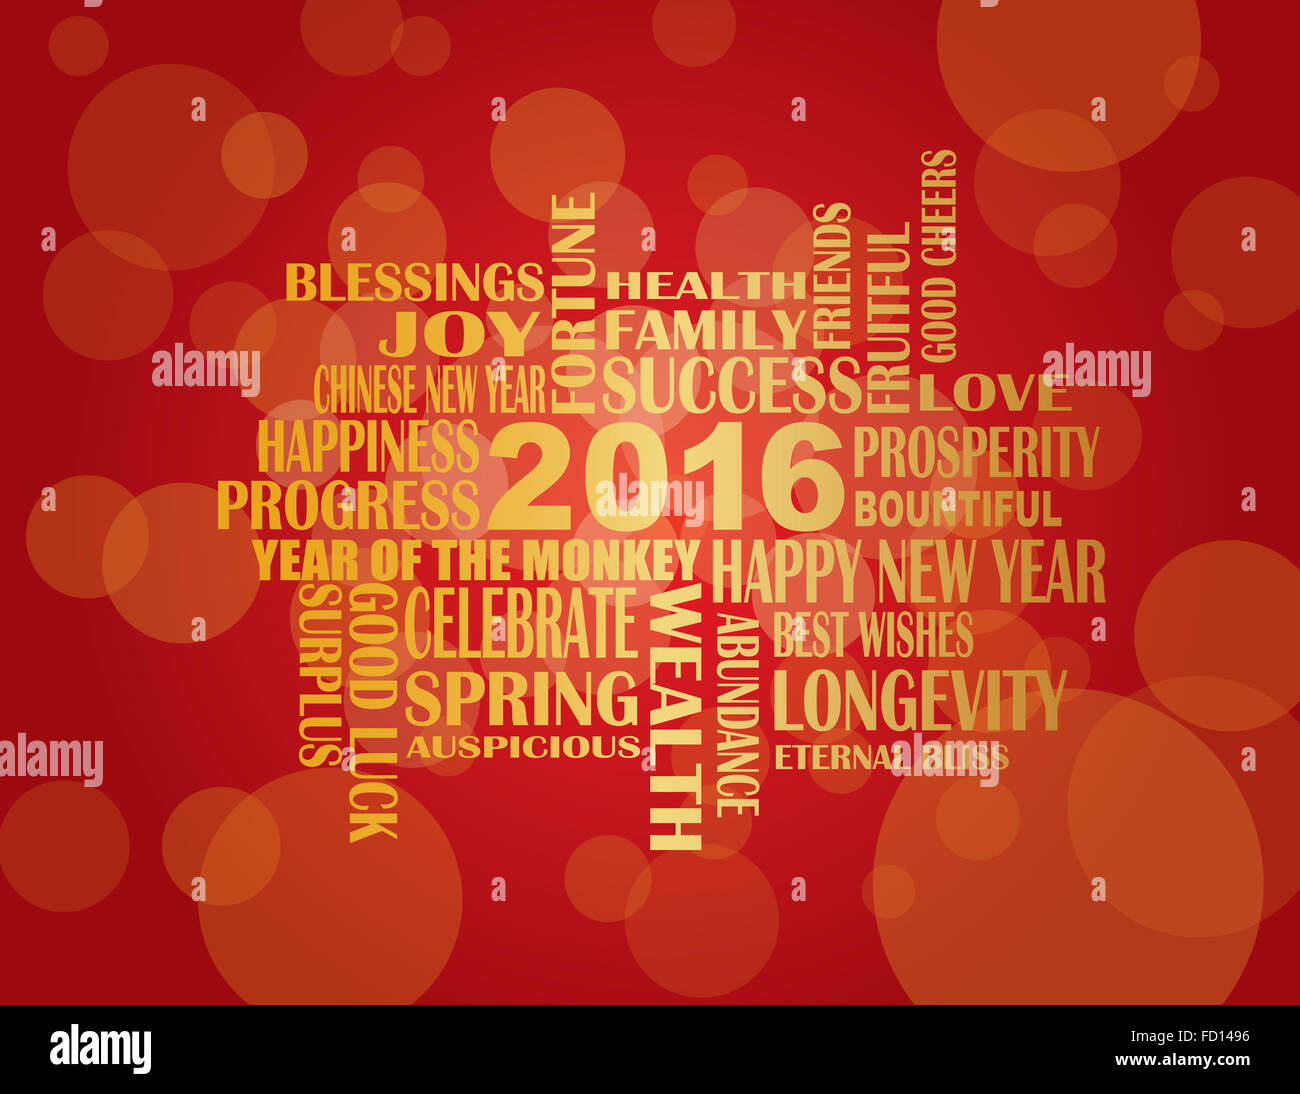 2016 chinese lunar new year english greetings text wishing health 2016 chinese lunar new year english greetings text wishing health good fortune prosperity happiness in the year of the monkey on m4hsunfo